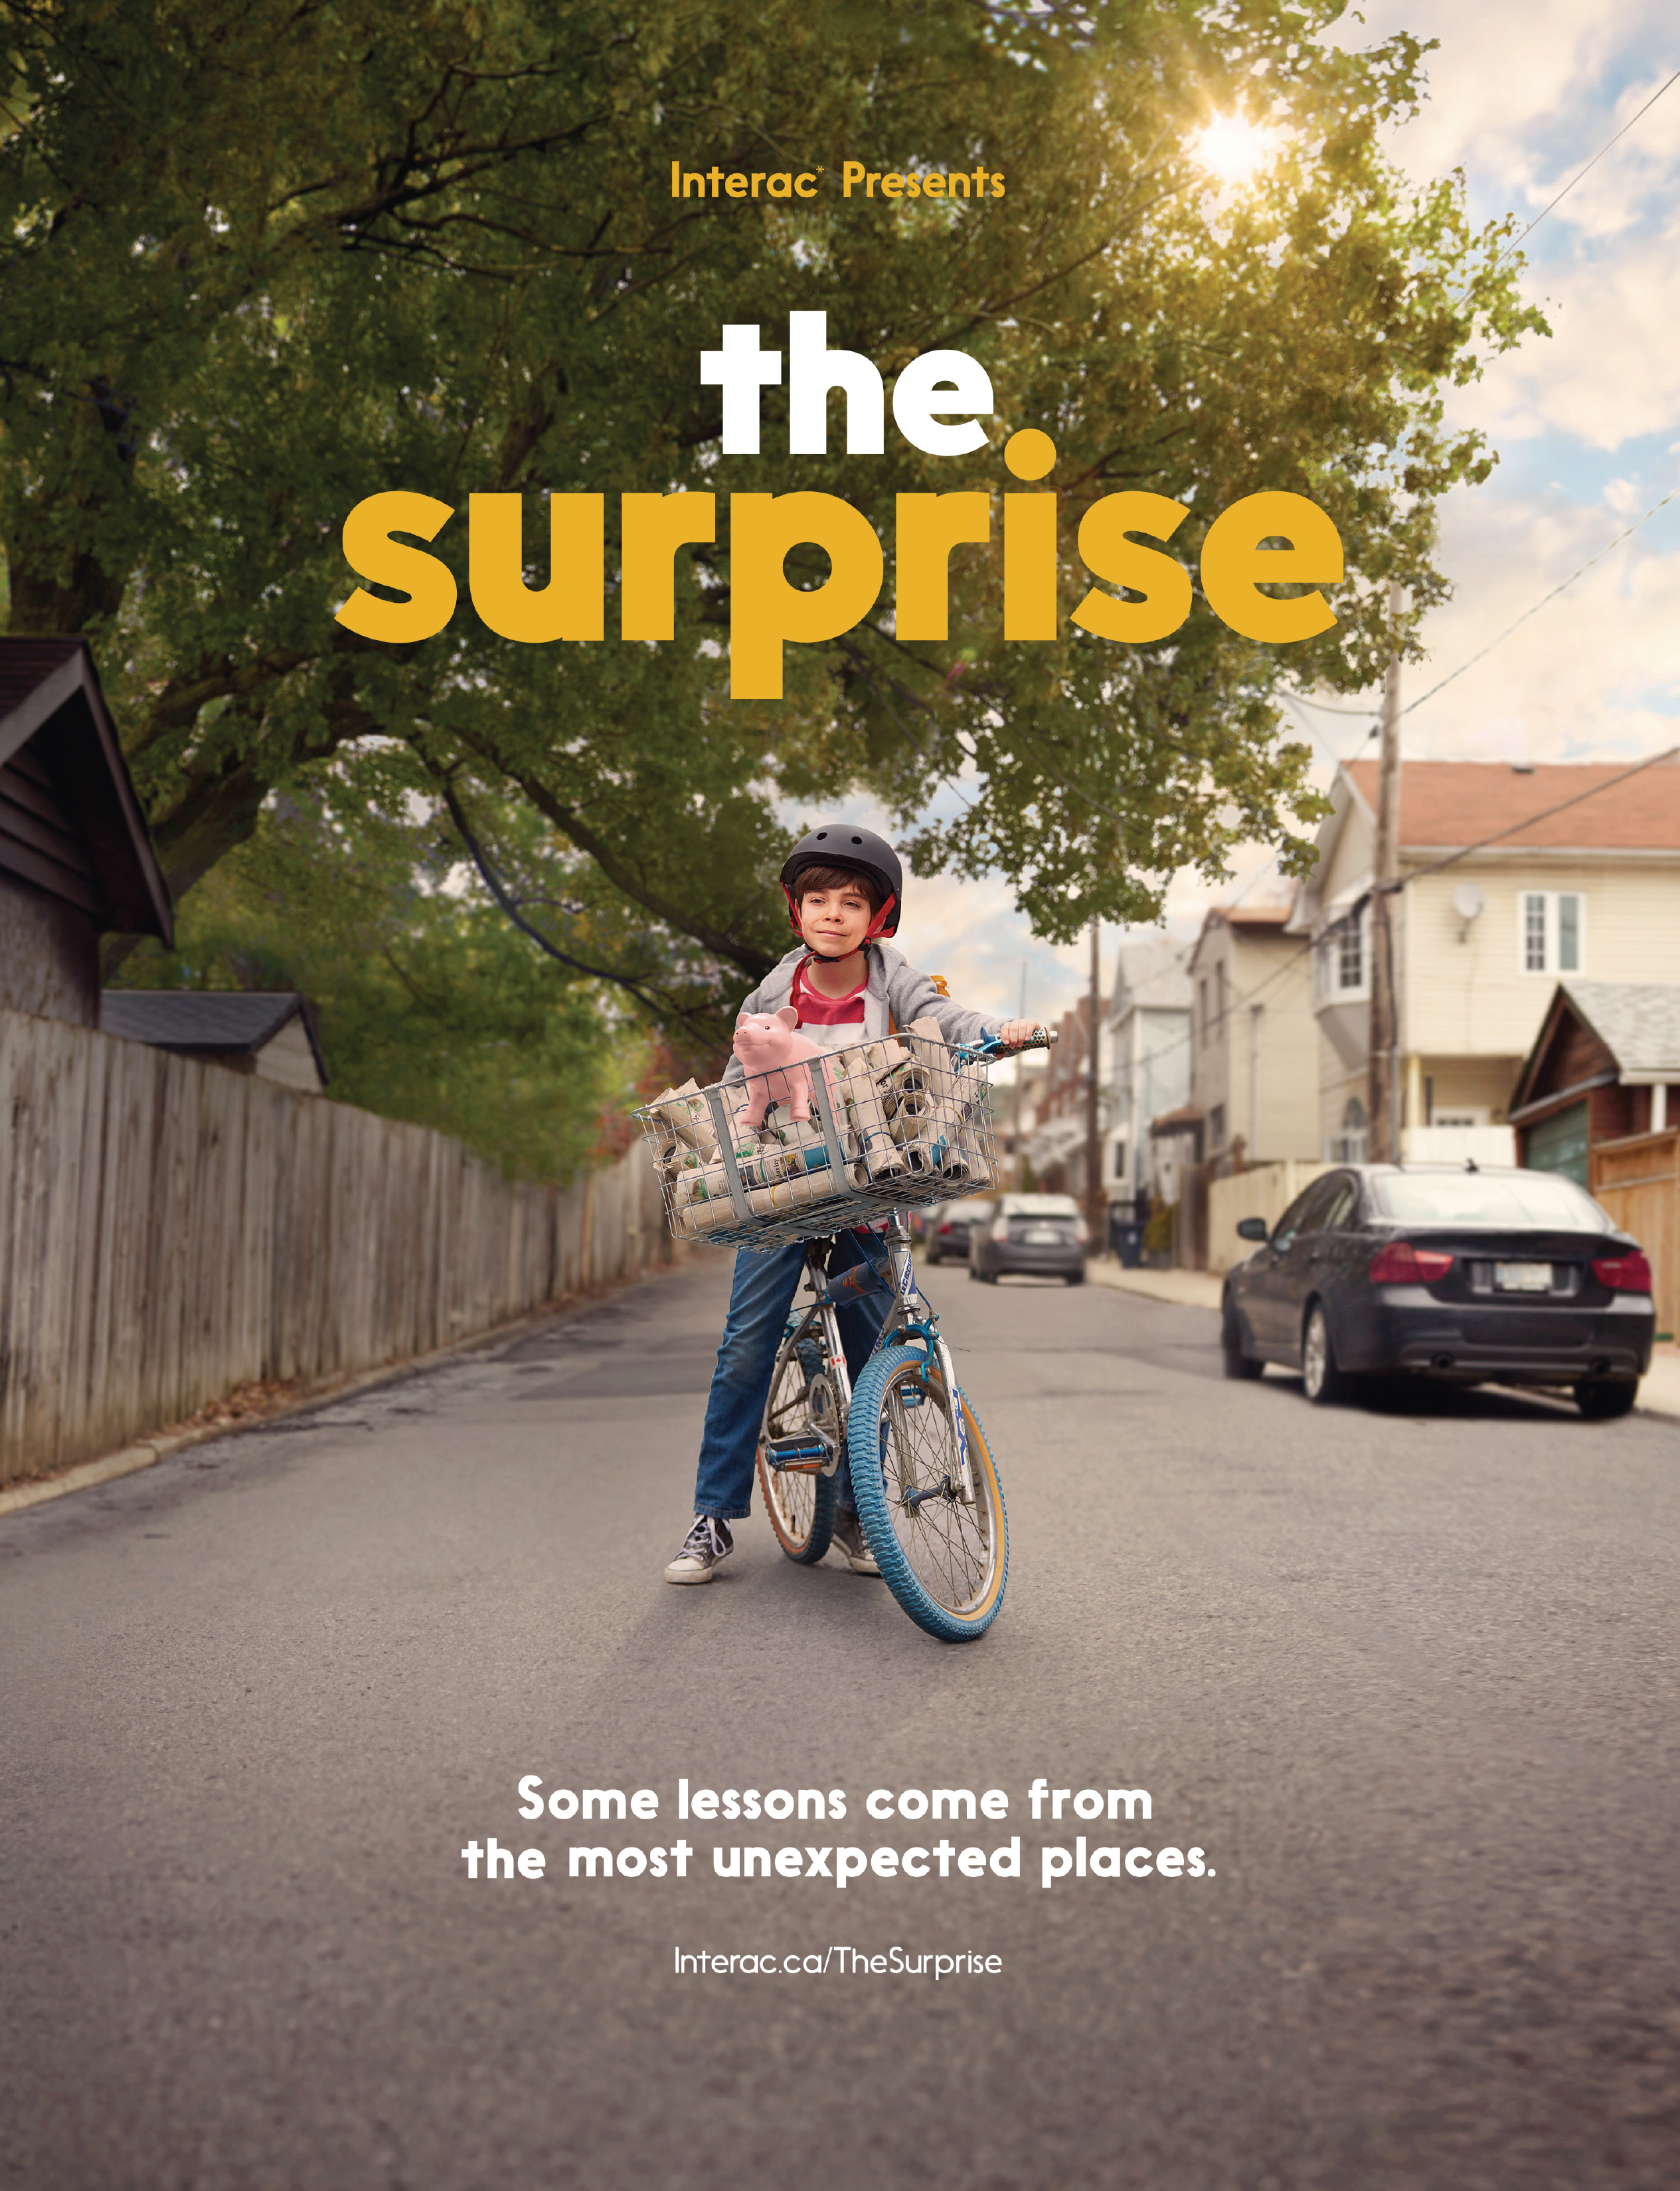 A branded content film for Interac struck a chord emotionally, telling the story of a boy who saves to buy a dog but gets a big surprise along the way.